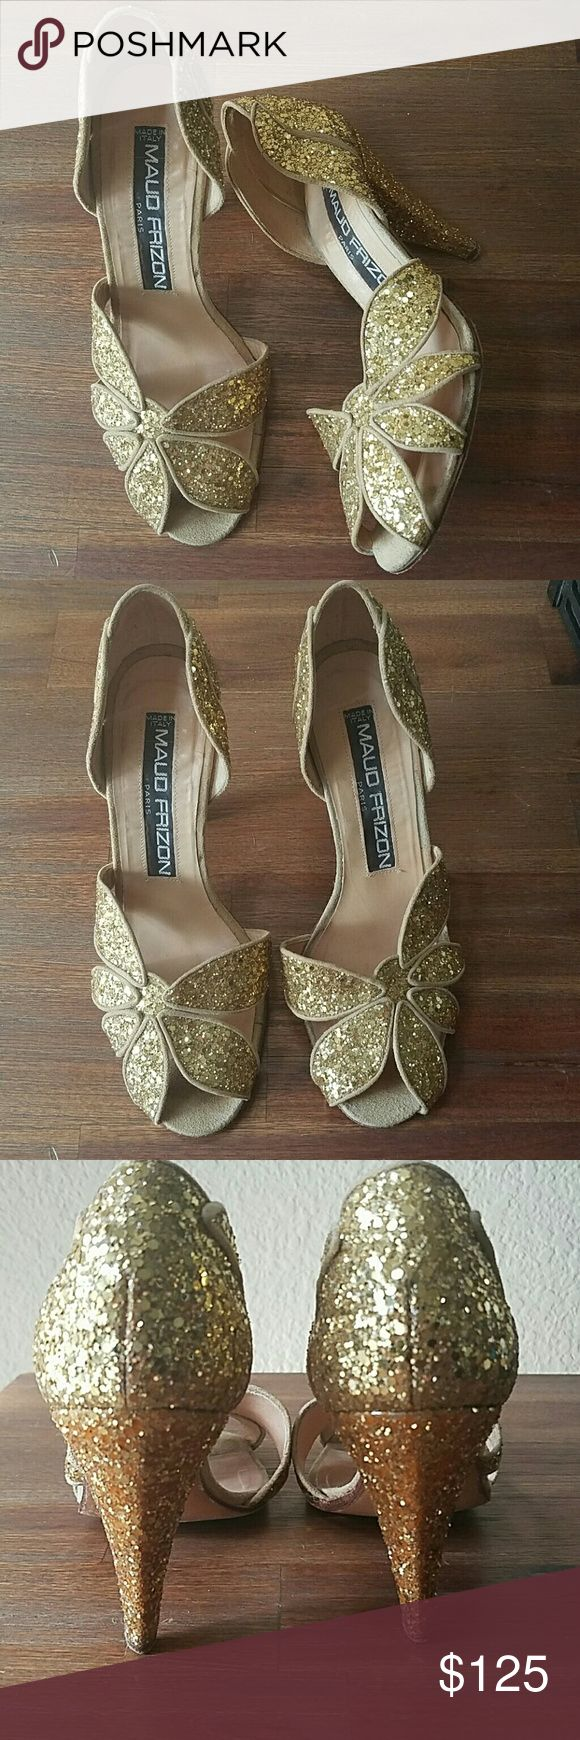 Wedding shoes? Maud Frizon Paris glam Vintage chic, made in Italy. There's nothing on the internet quite like these! Pair these with boyfriend jeans and a white blousy tee! Please see all photos for wear, I'm happy to provide more detail/pics as well. ❌No trades ❌No lowball offers Maud frizon Shoes Heels